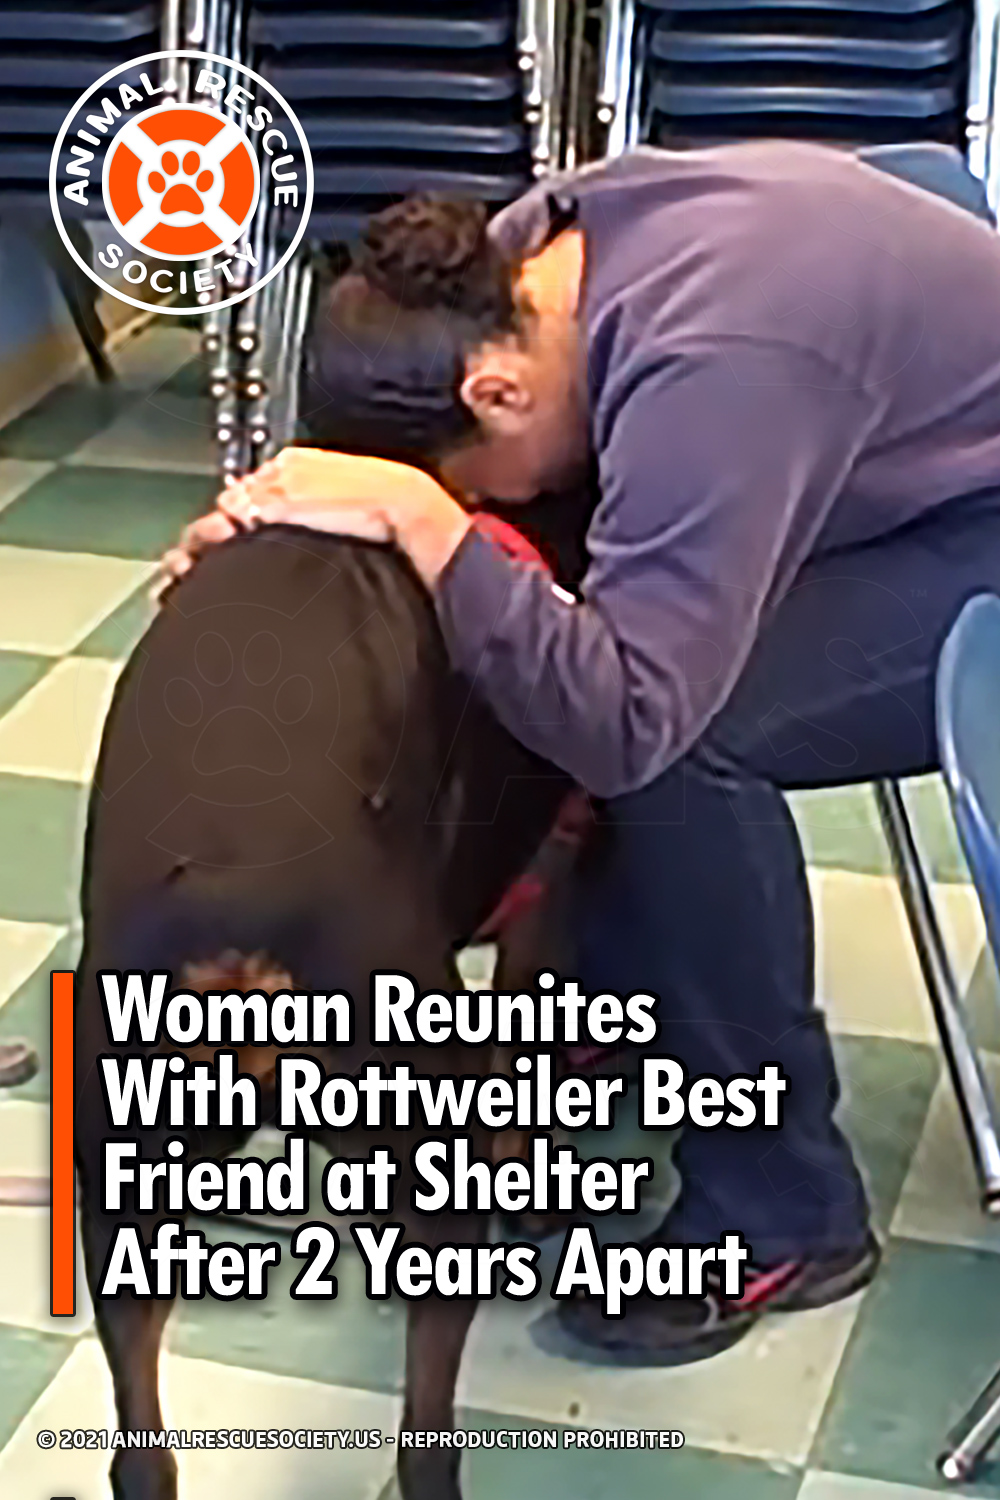 Woman Reunites With Rottweiler Best Friend at Shelter After 2 Years Apart